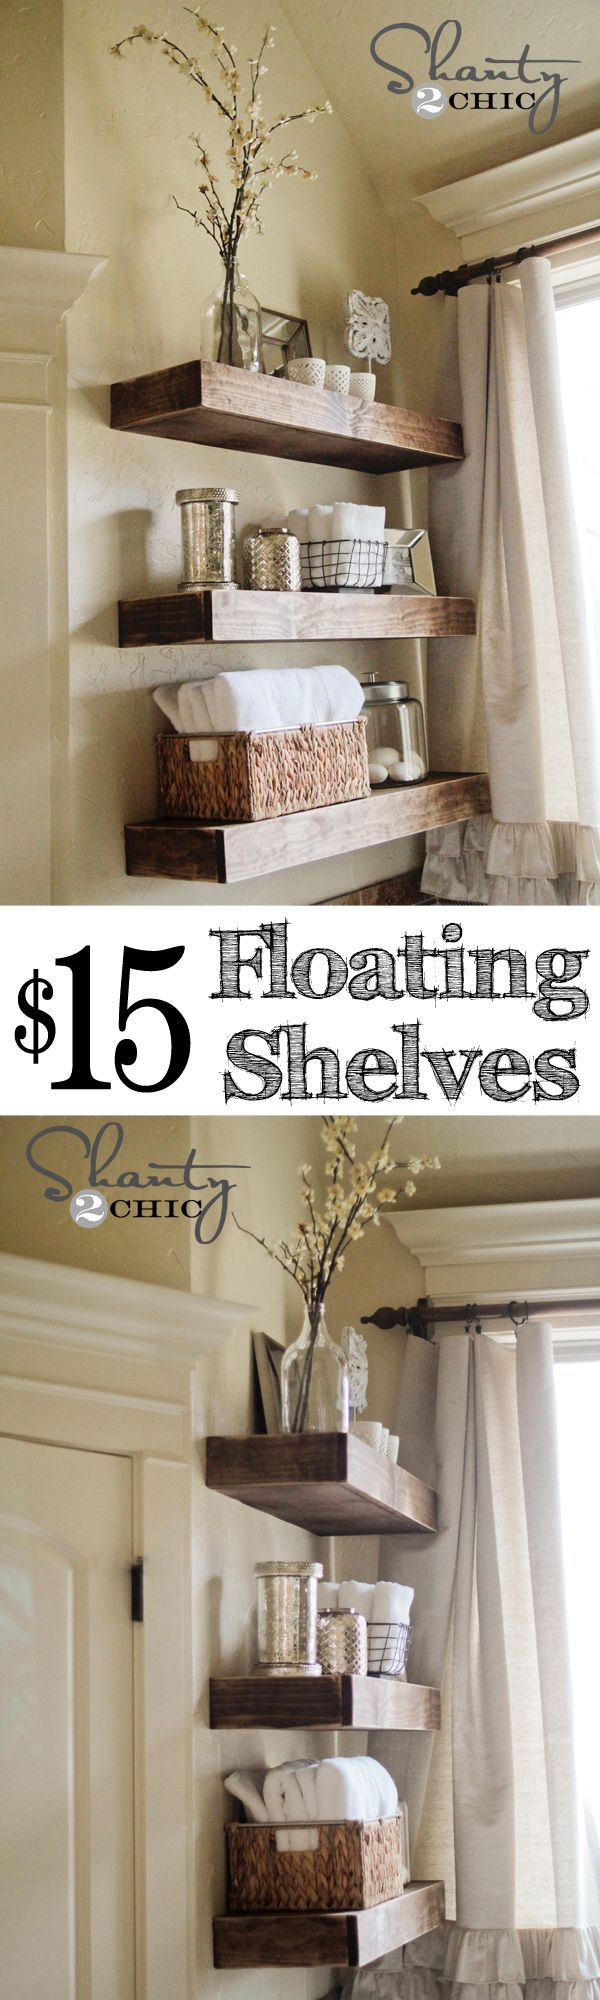 DIY Floating Shelves for bathroom makeover